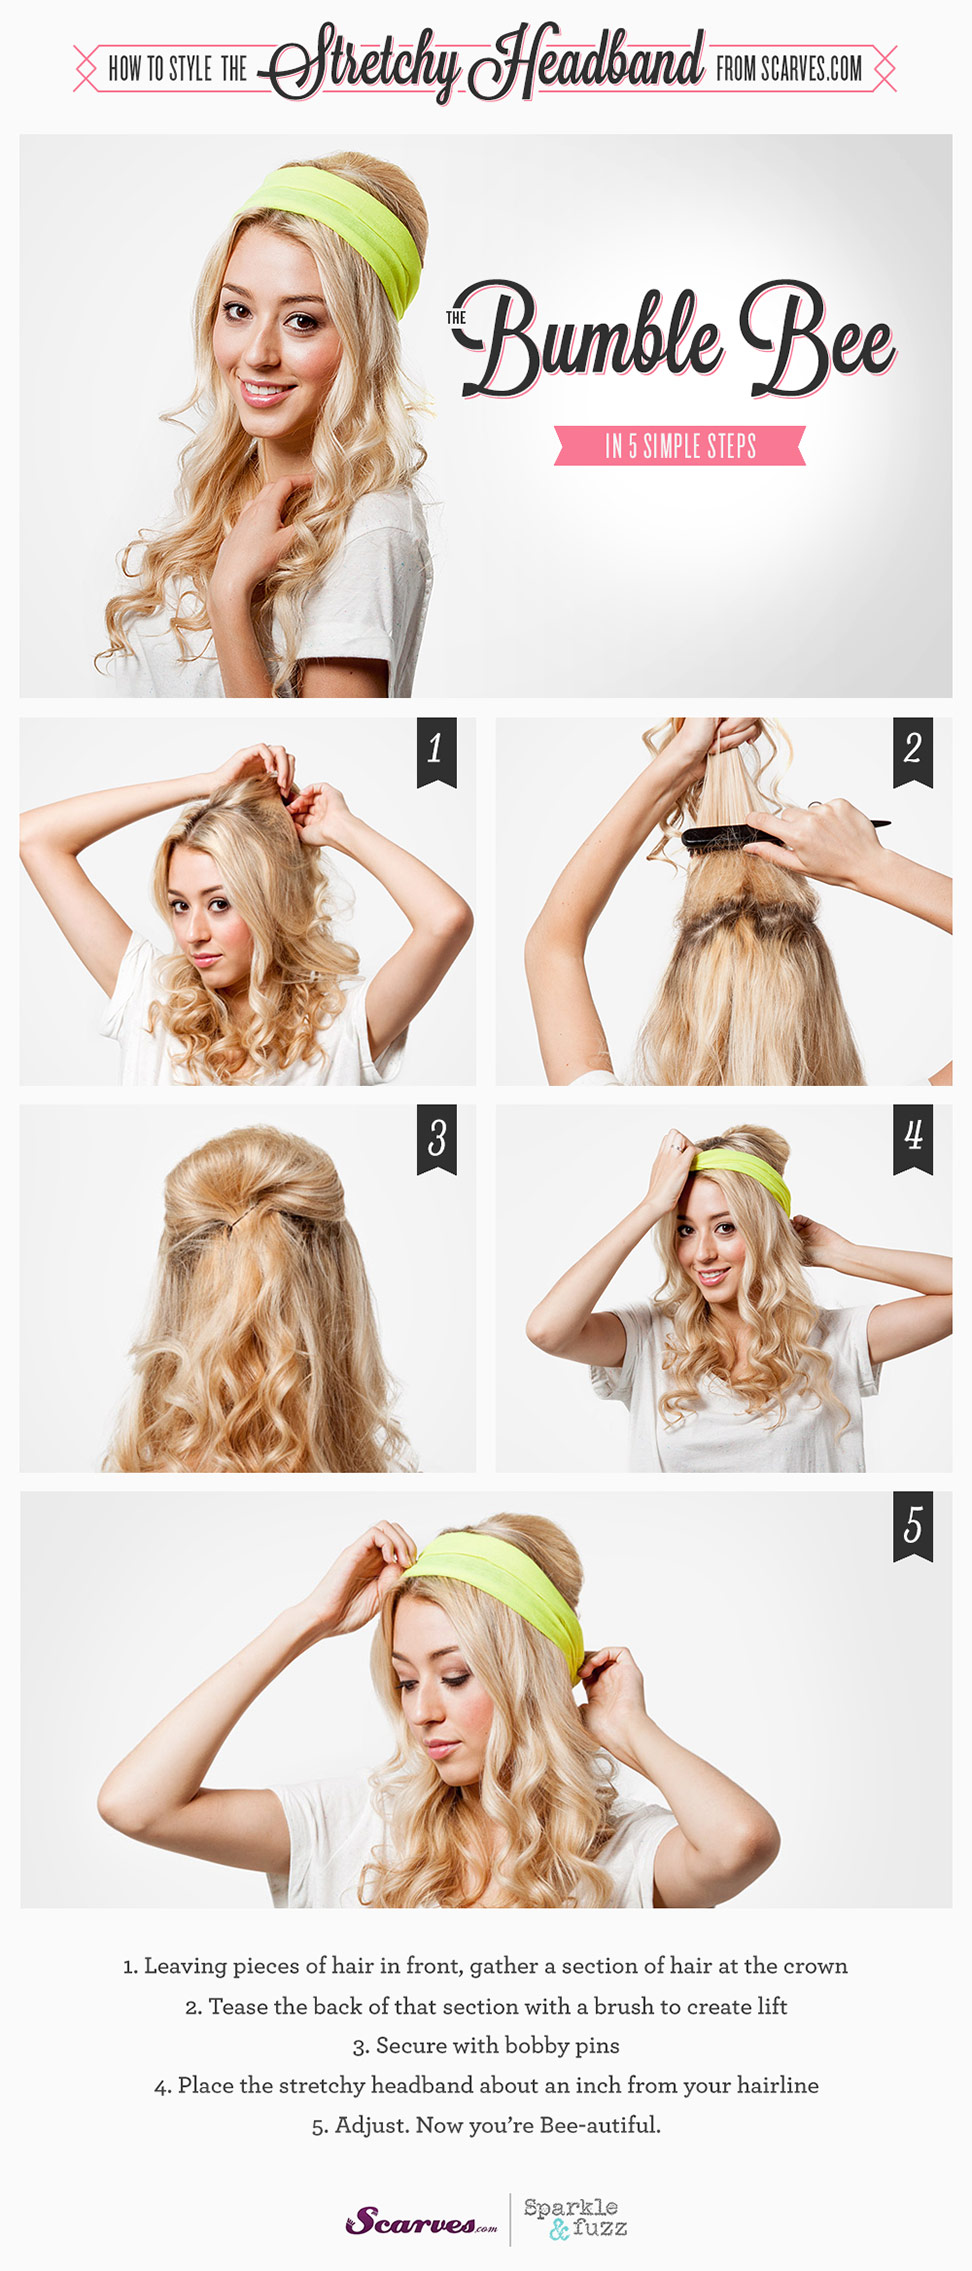 The Bumble Bee - How to Style a Stretchy Headband